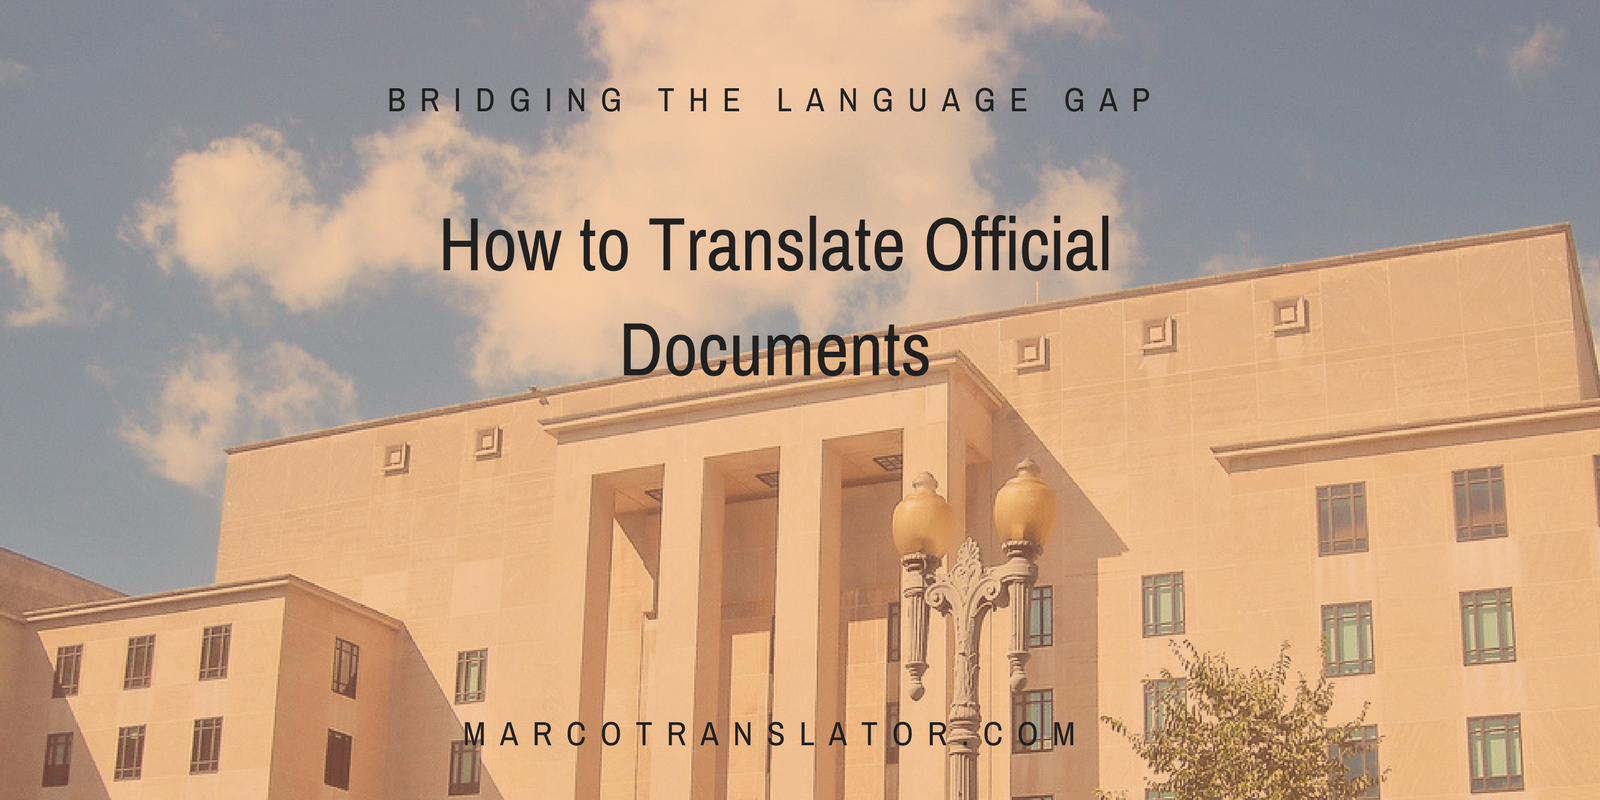 English and Spanish document translation birth and marriage certificates, divorce decrees, etc.